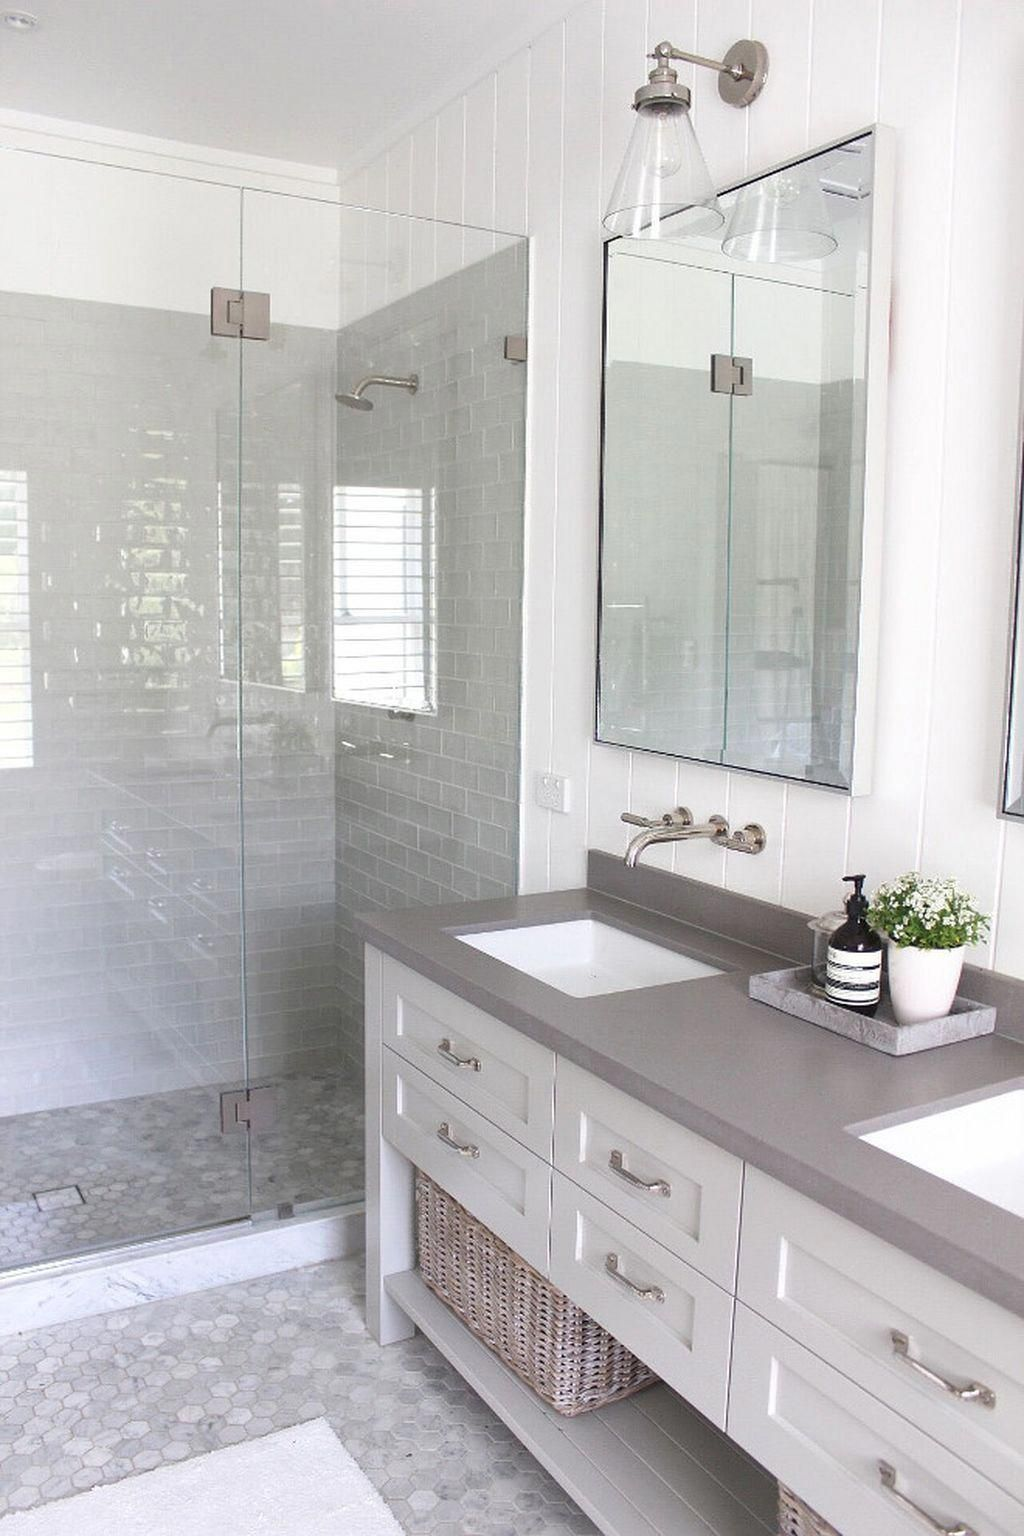 You Can Save Up Money By Opting For Low Cost Alternatives For What Would Be The Most Expensive Product Farmhouse Shower Bathroom Tile Designs Bathroom Interior